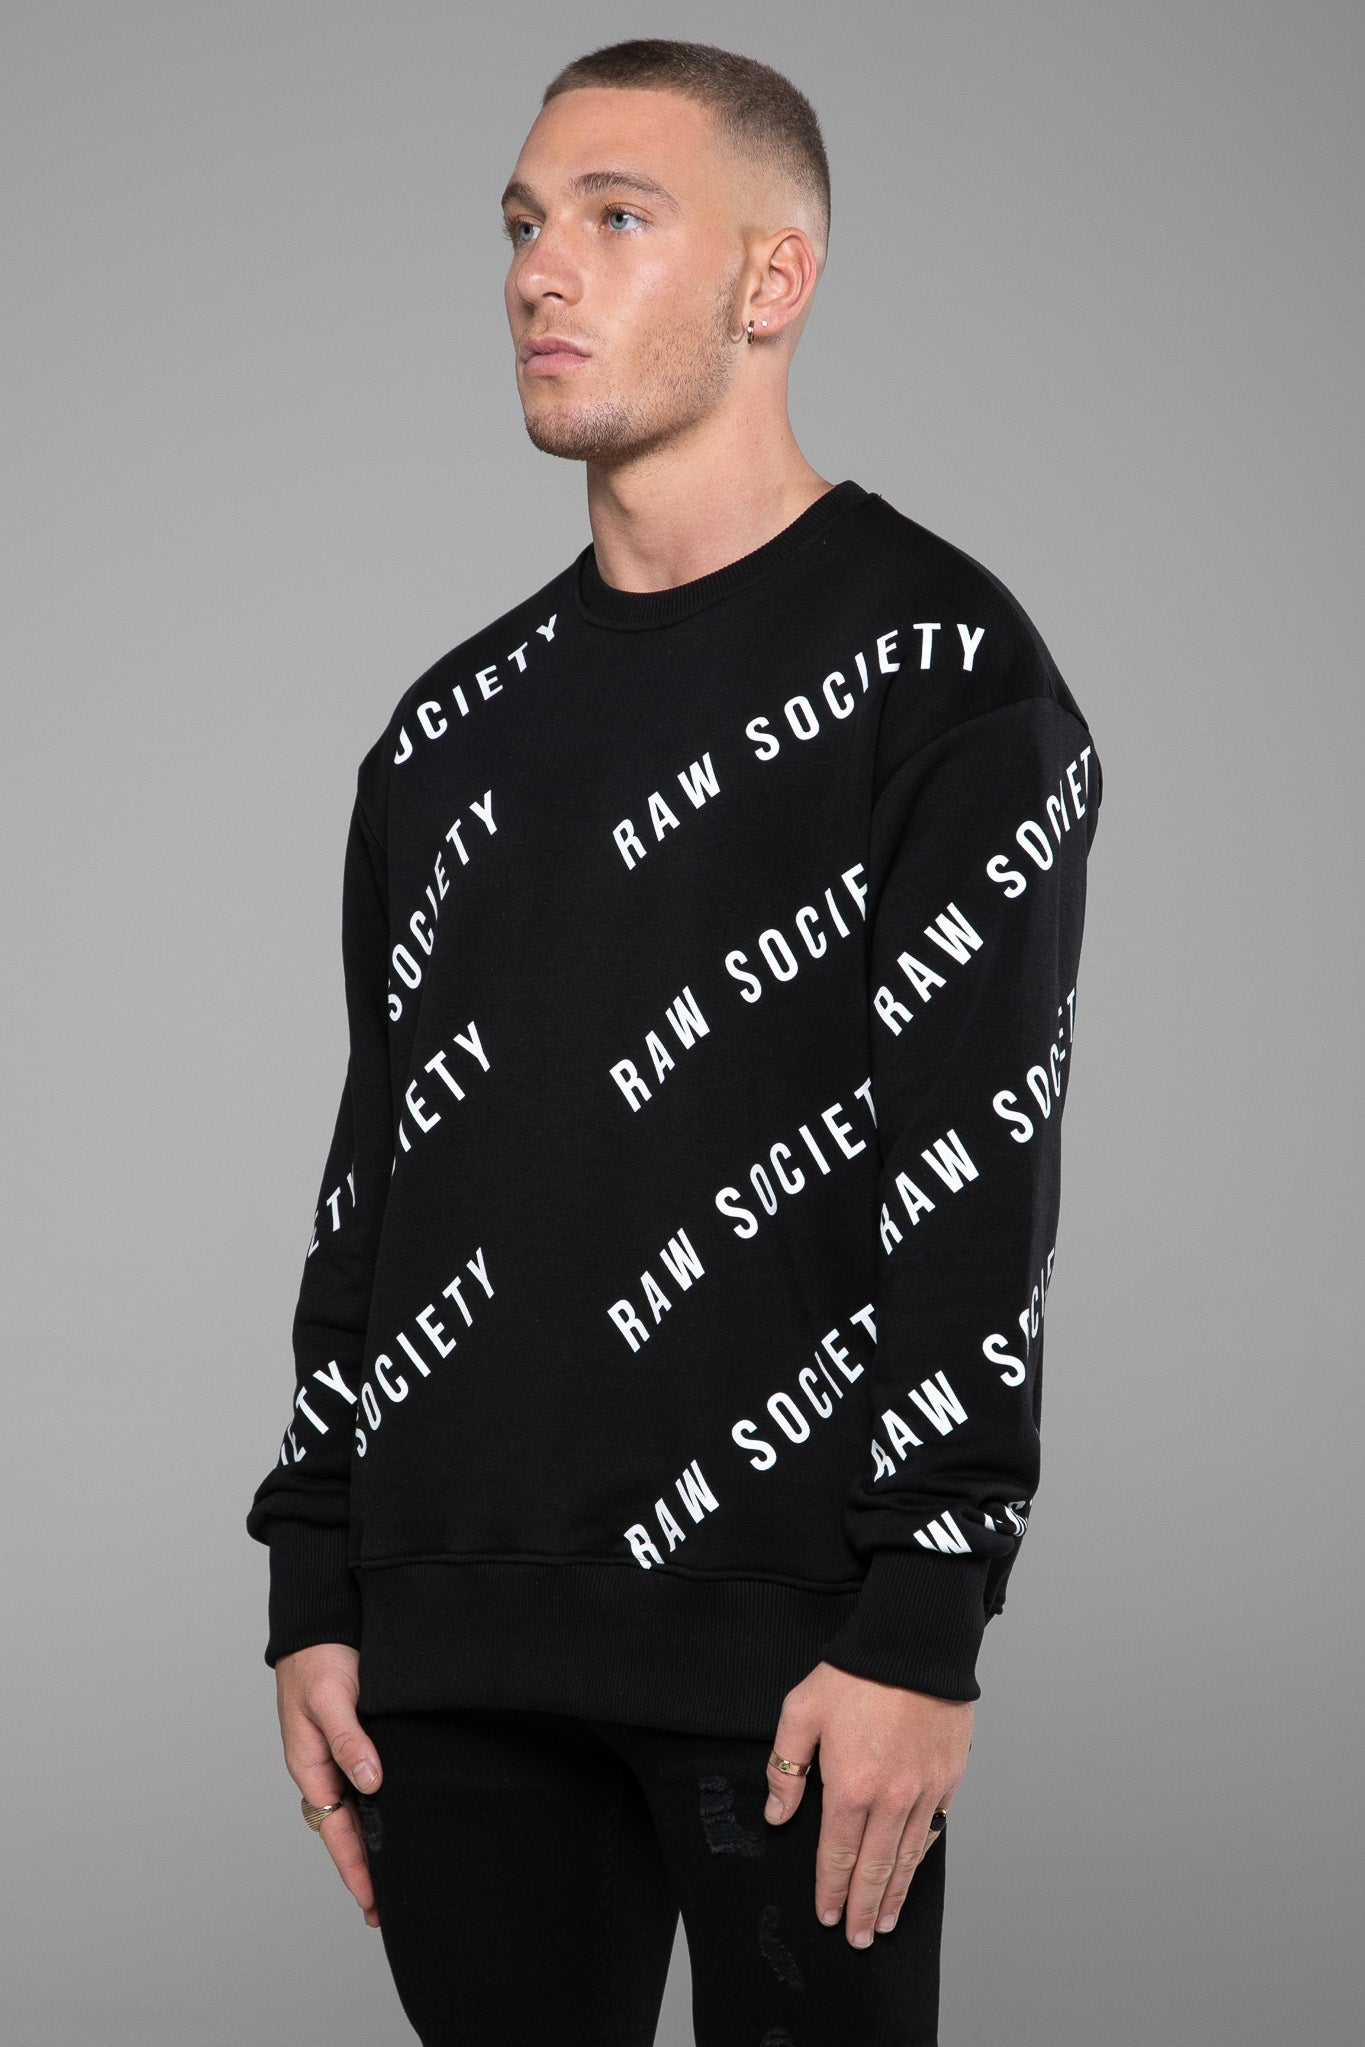 SWEATSHIRT - REPEAT